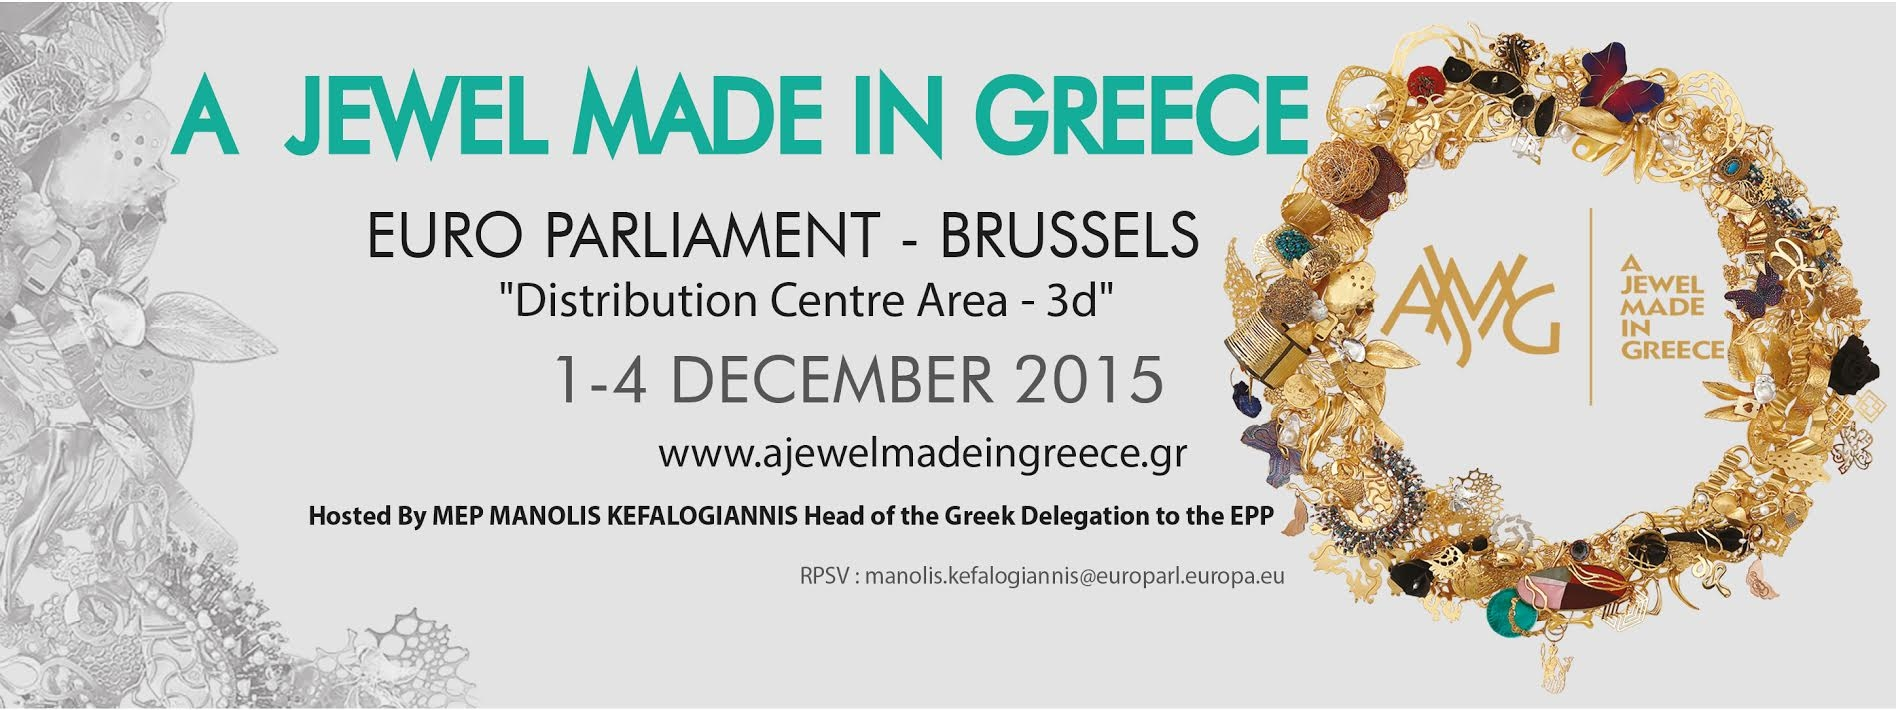 A jewel made in Greece. Designer's third Annual Meeting